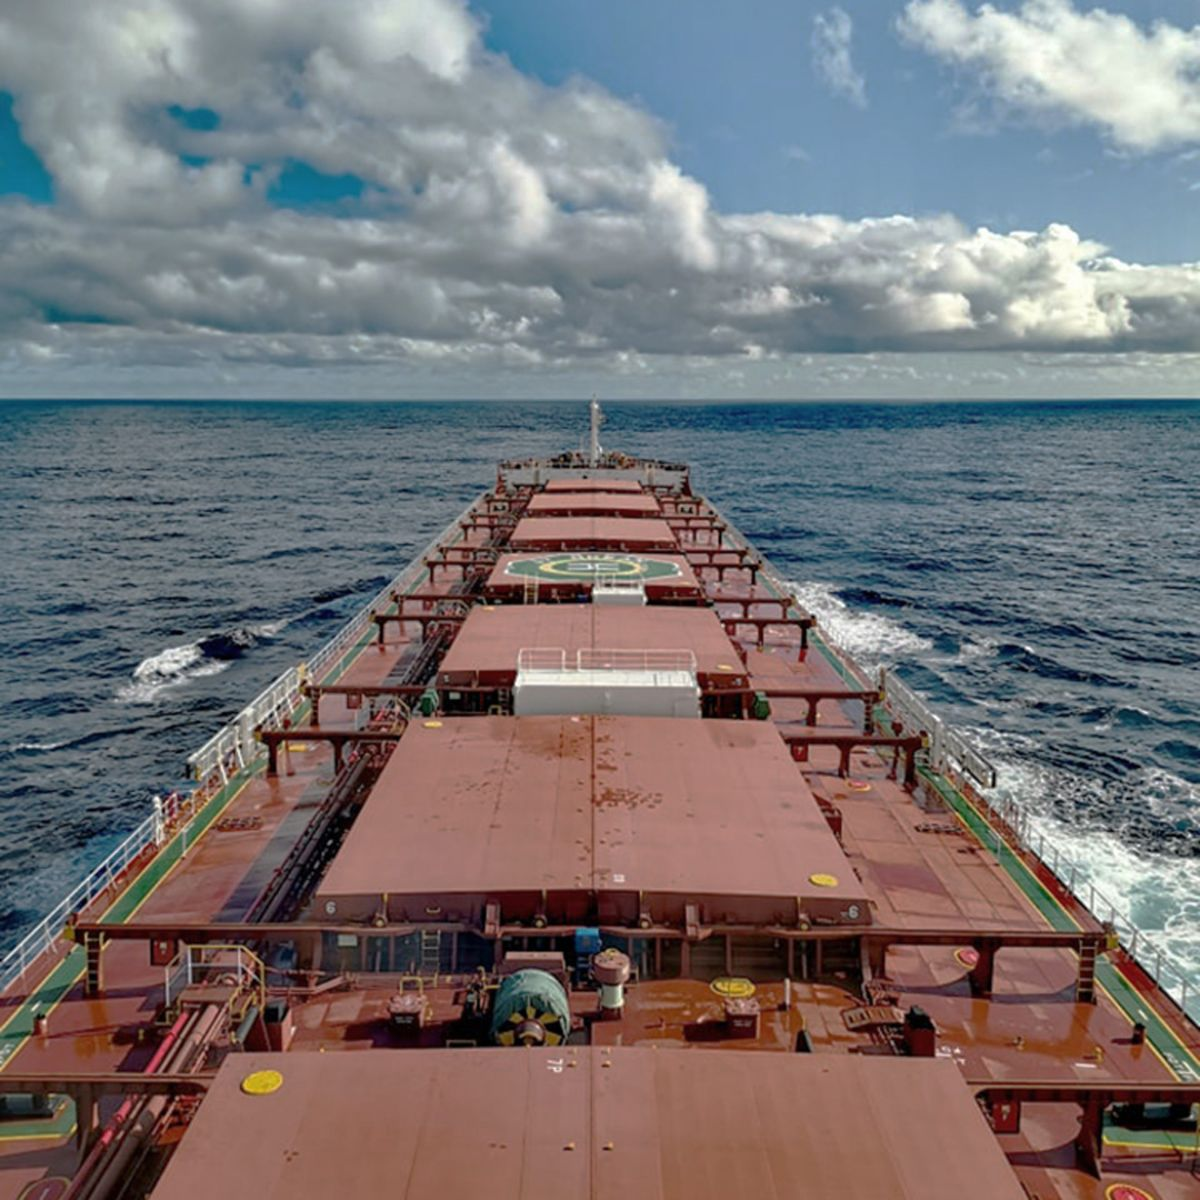 By August, almost half of the 20-person crew on-board the JY Ocean bulk carrier had been at sea for more than a year.